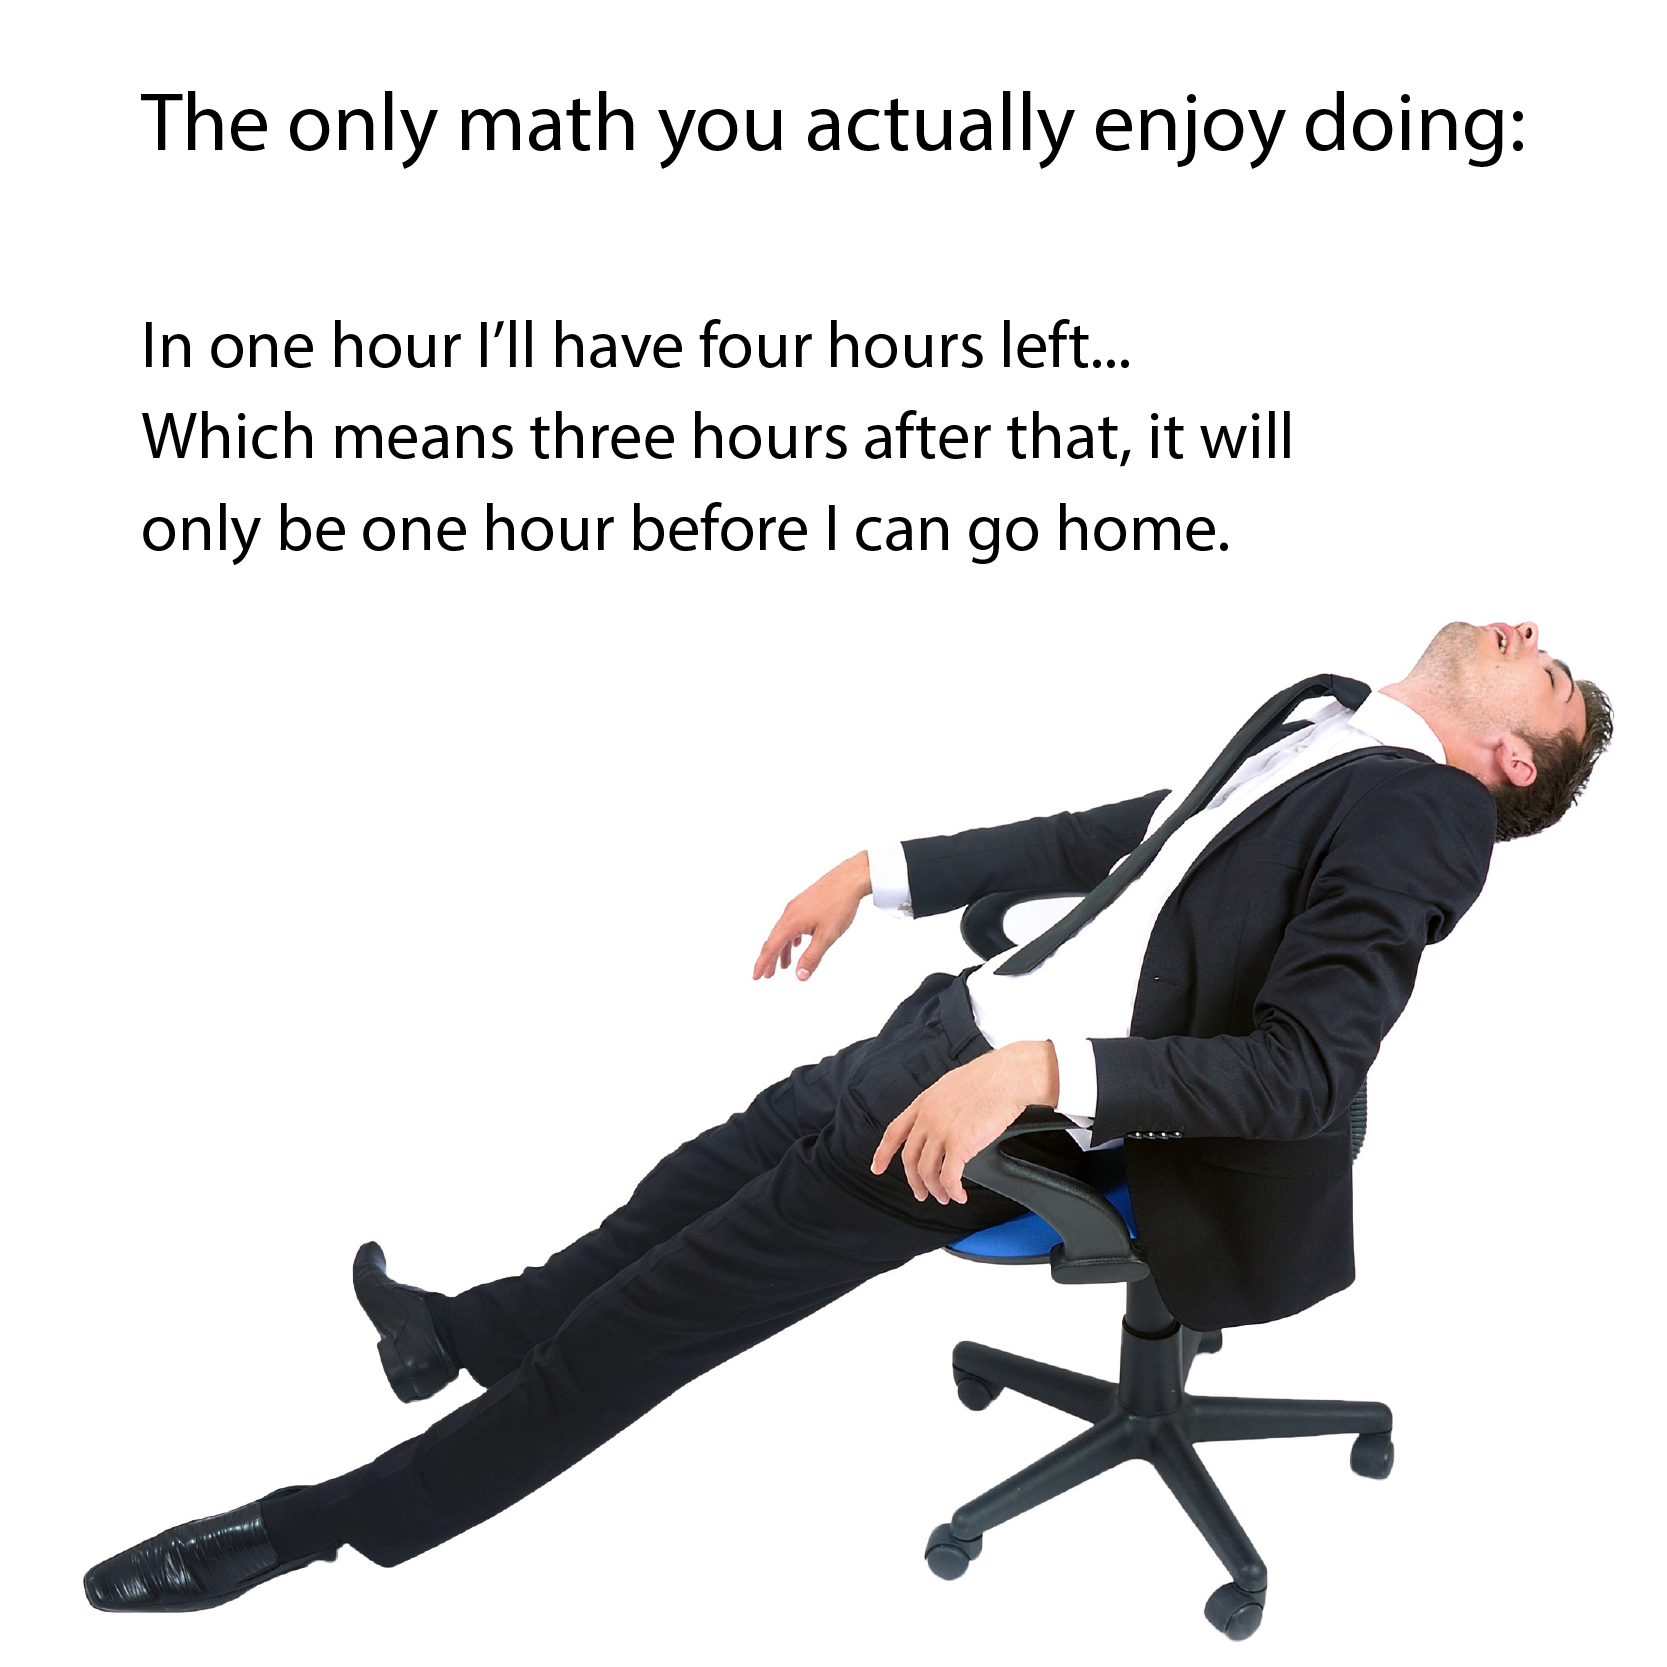 Worksheets Images Only Math math humor the only you actually enjoy doing in one hour i i